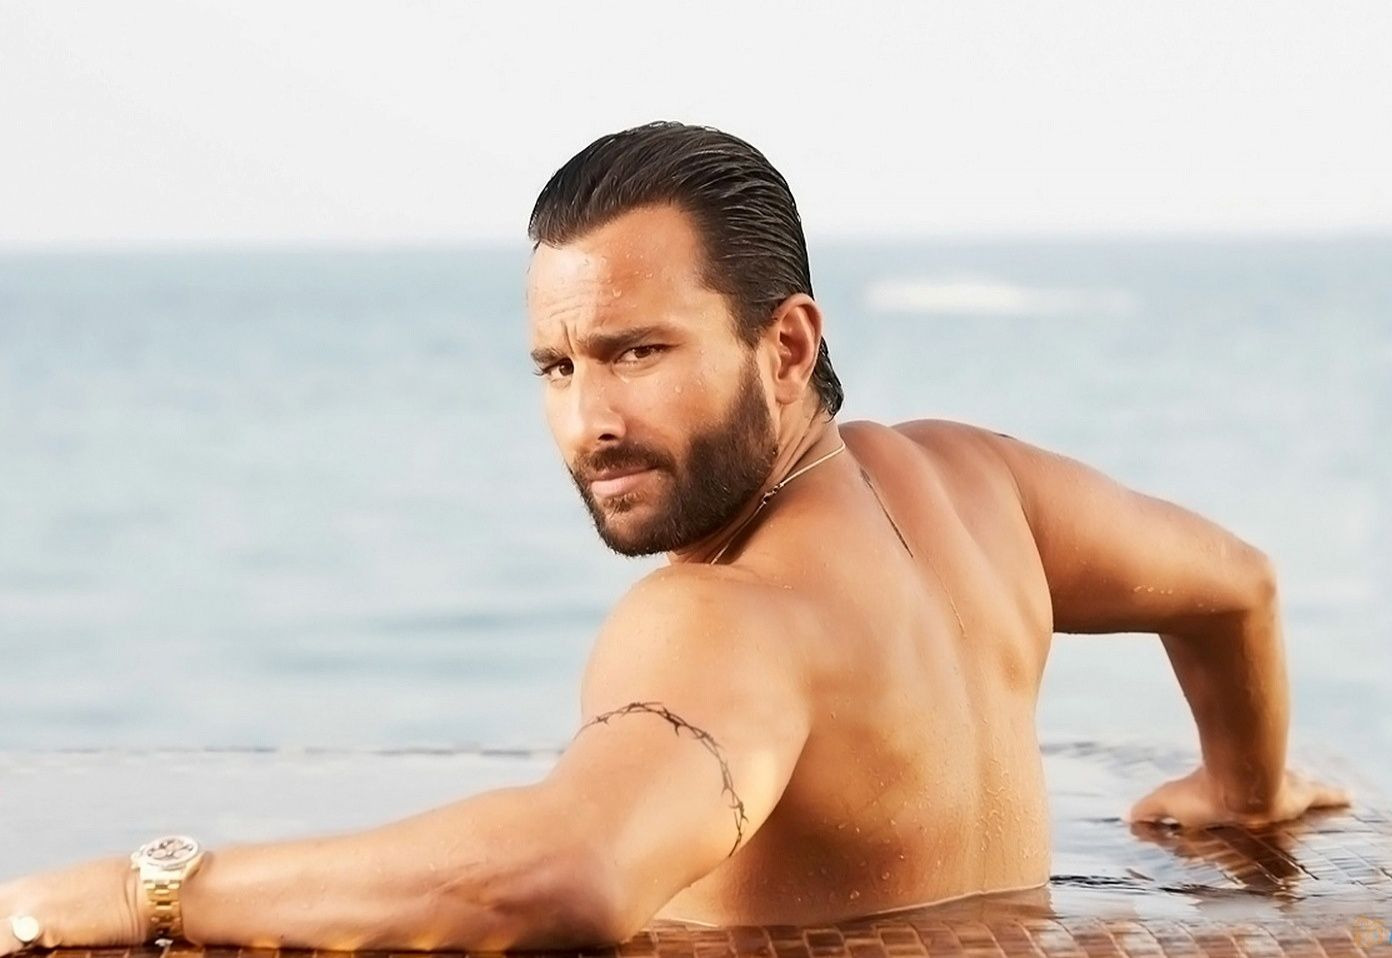 Saif paid price for being handsome